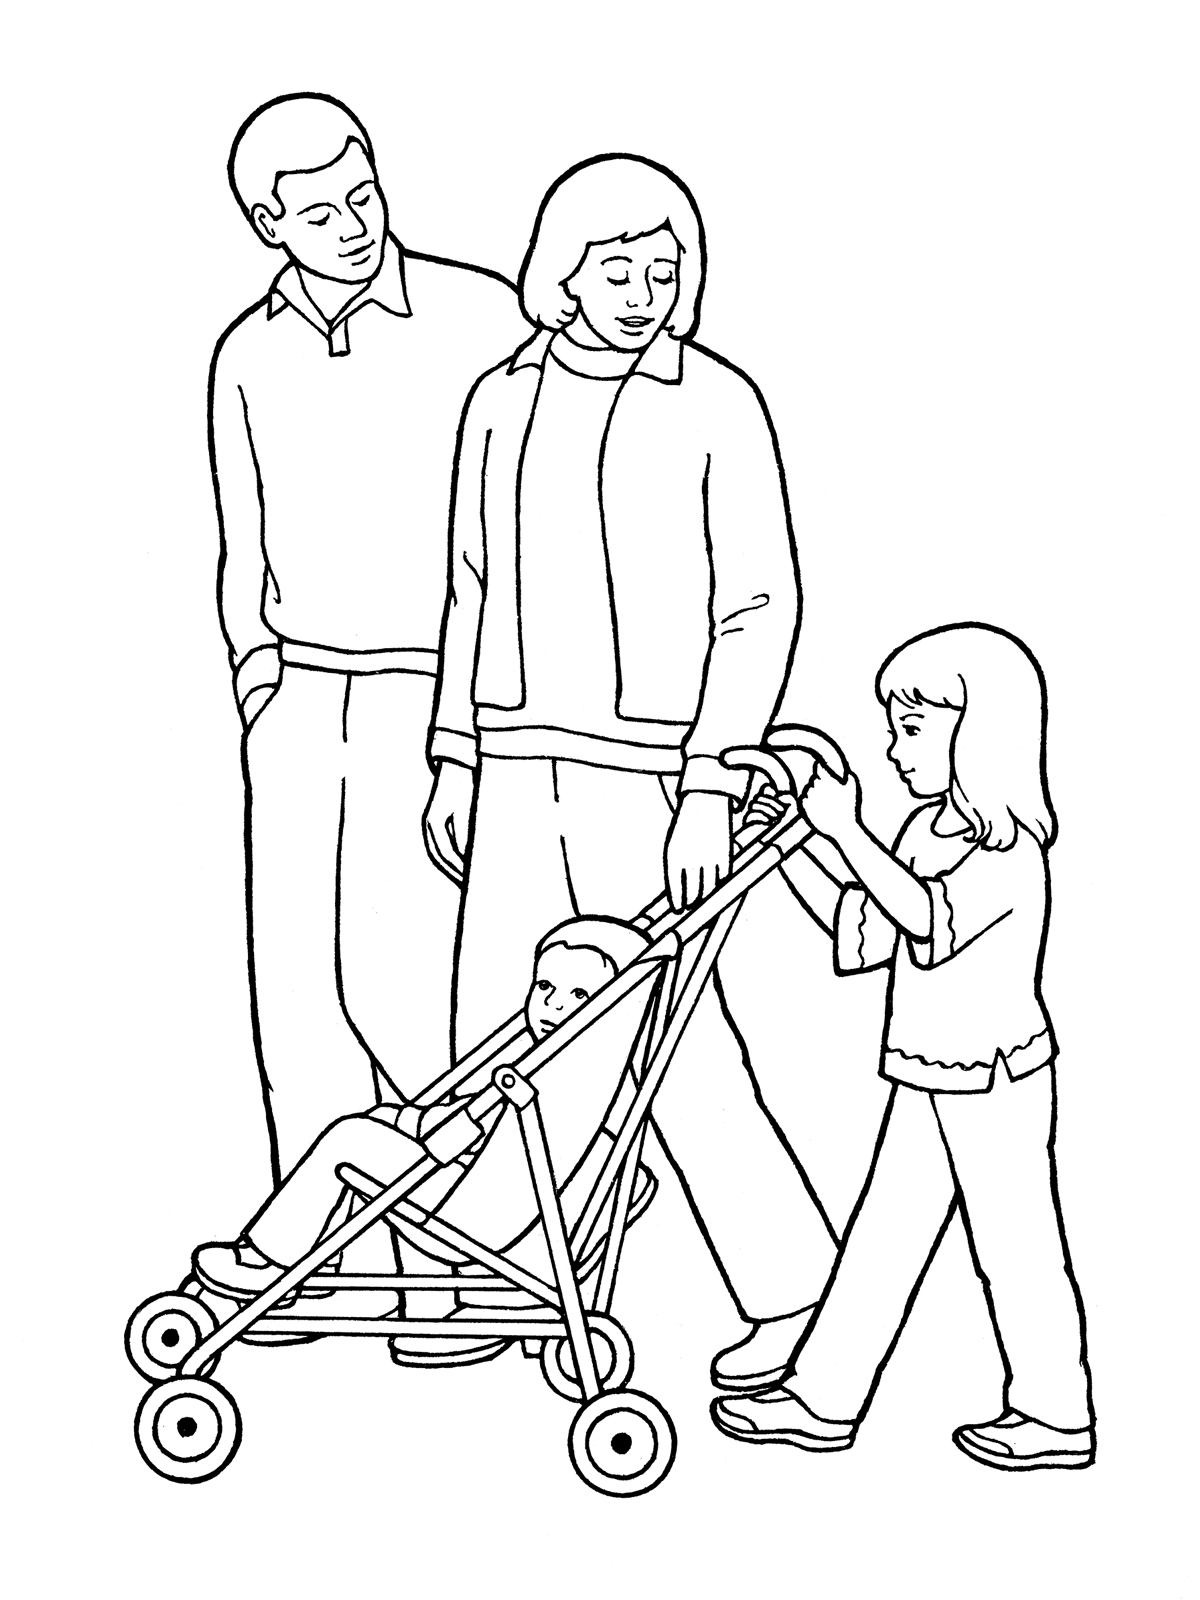 Family Pushing a Stroller